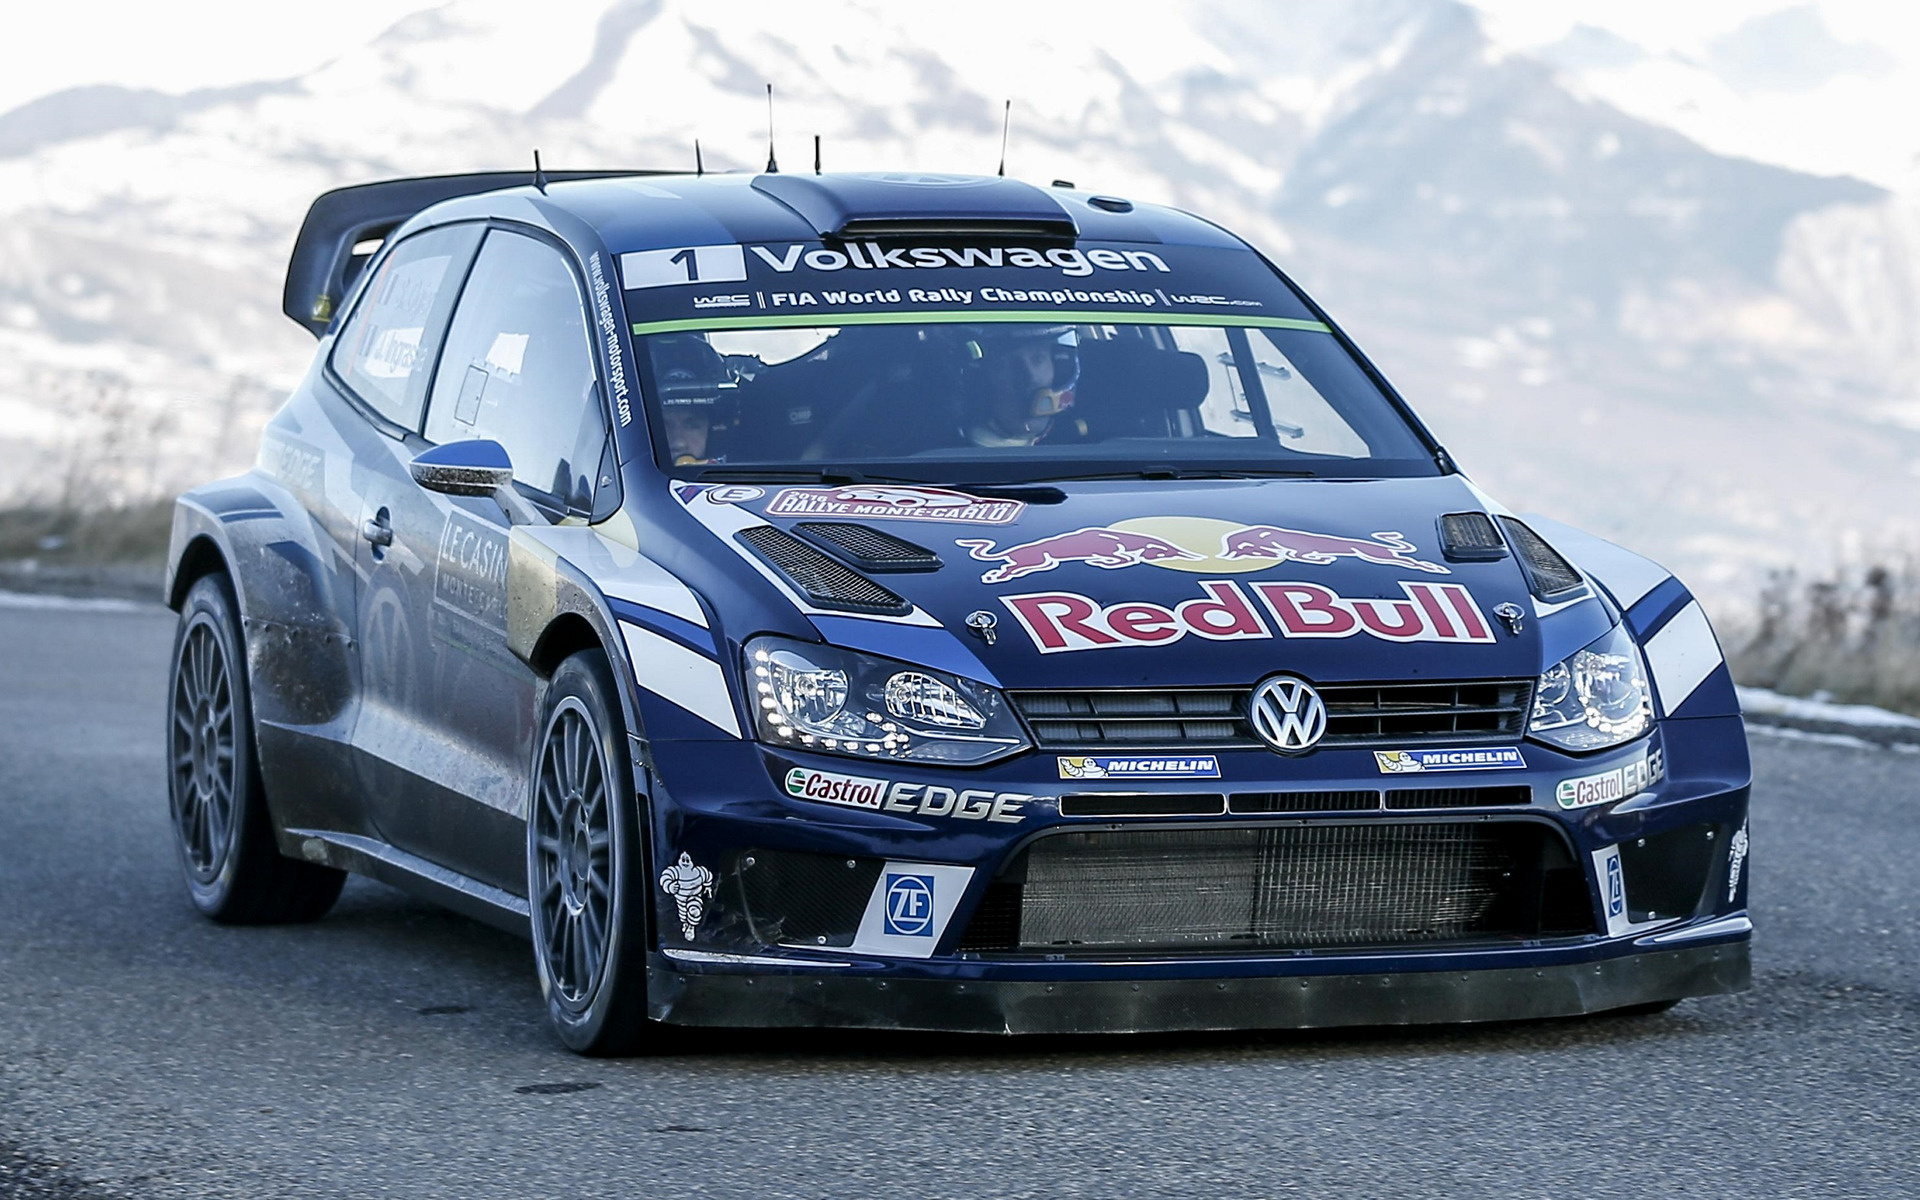 Volkswagen Polo R WRC (2016) Wallpapers and HD Images - Car Pixel